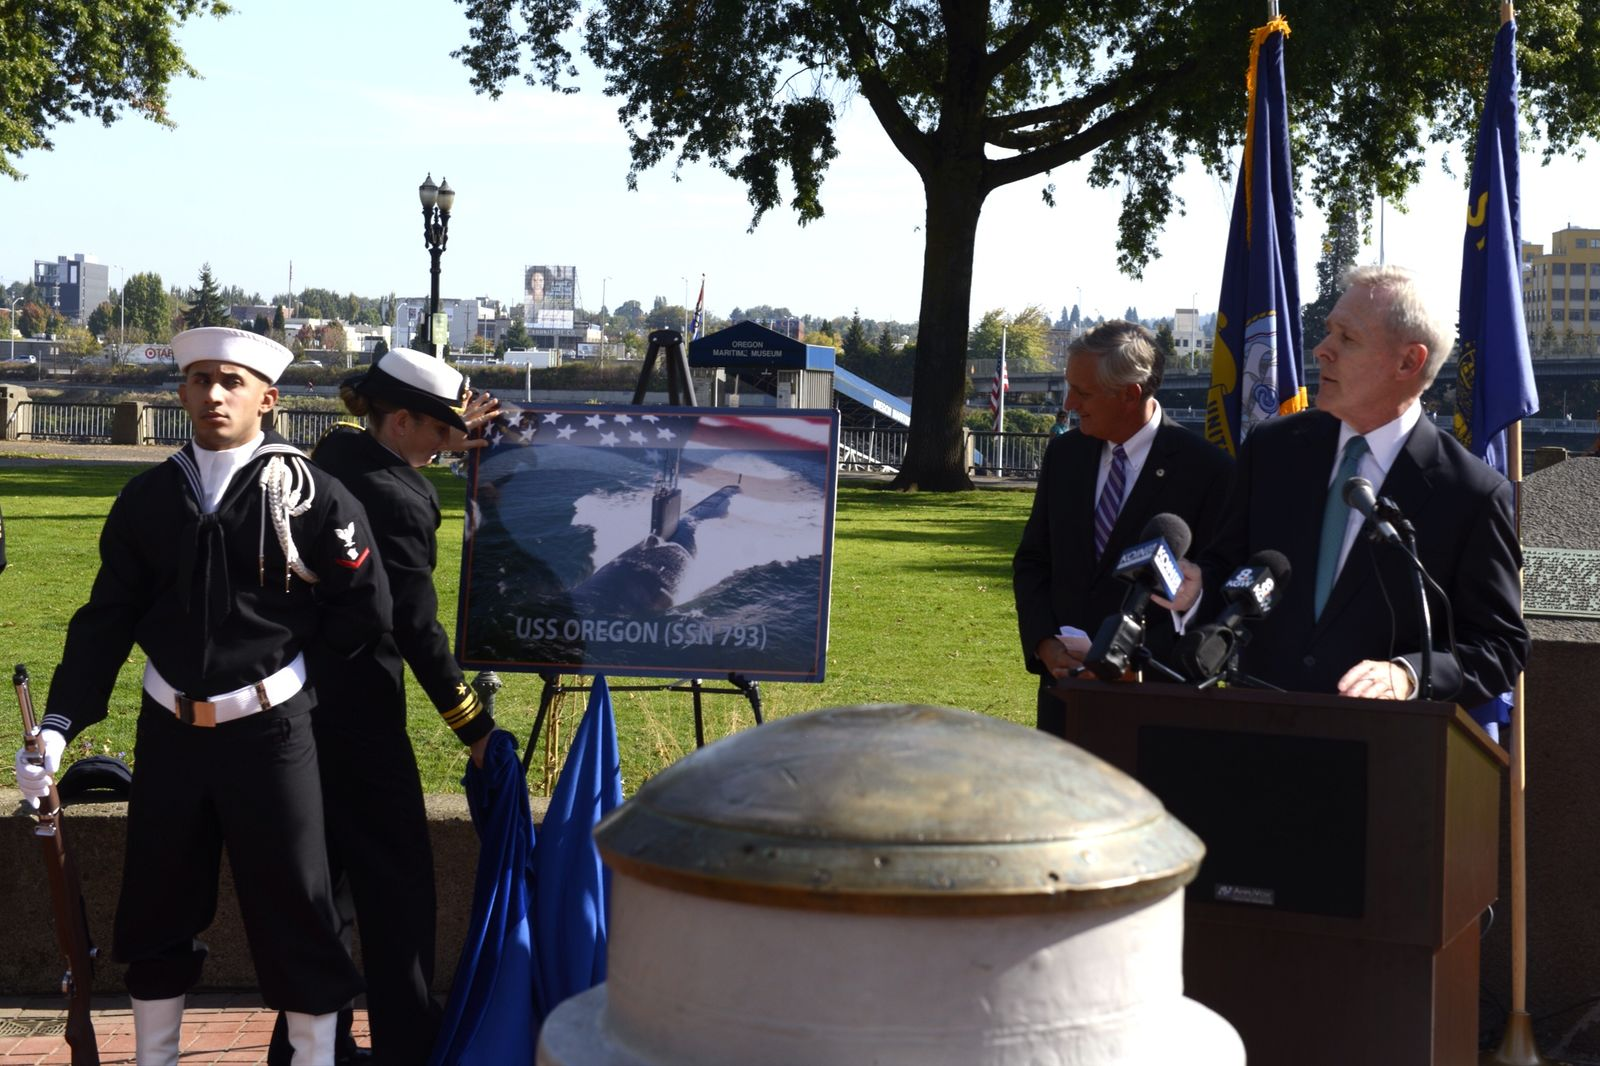 Secretary of the Navy (SECNAV) Ray Mabus unveils the future Virginia-class submarine USS Oregon (SSN 793) at the Battleship Oregon Memorial at Gov. Tom McCall Waterfront Park as Mayor of Portland Charlie Hales looks on. in October 2014. (U.S. Navy photo by Mass Communication Specialist 2nd Class Armando Gonzales/Released)